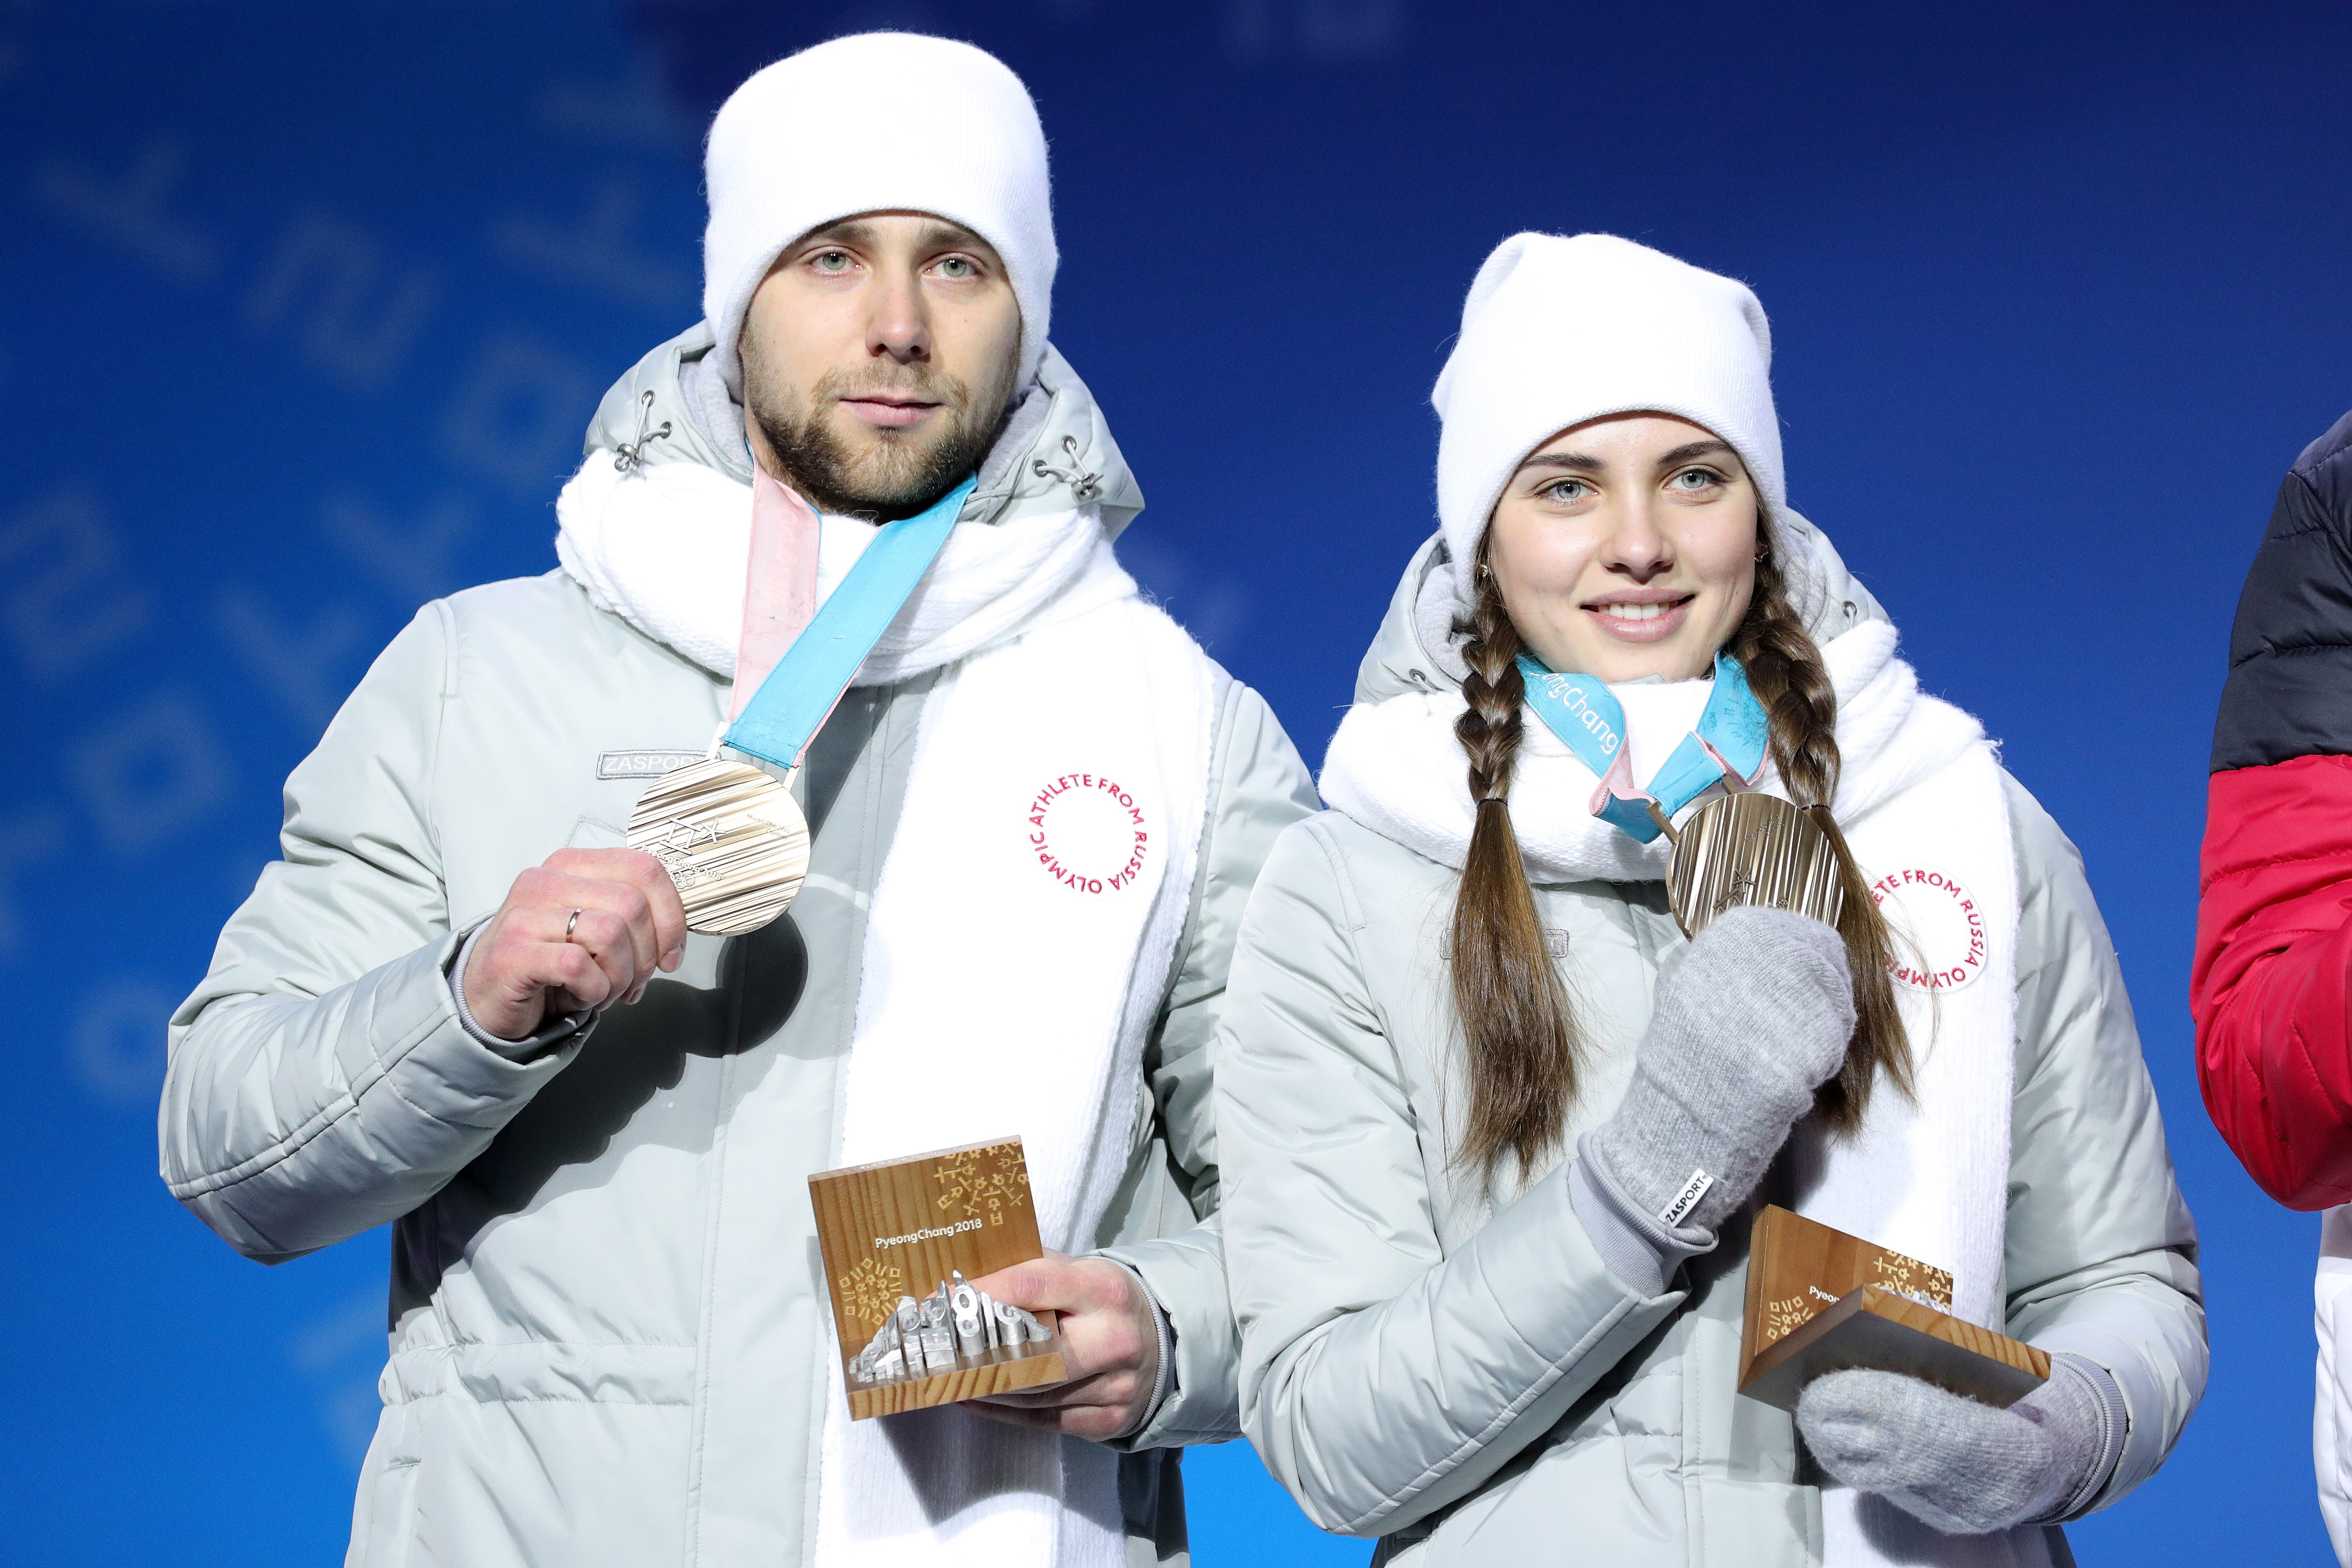 Bronze medalists Aleksandr Krushelnitckii and Anastasia Bryzgalova of Olympic Athletes from Russia pose during the medal ceremony for Curling Mixed Doubles on day five of the PyeongChang 2018 Winter Olympics at Medal Plaza on February 14, 2018 in Pyeongch